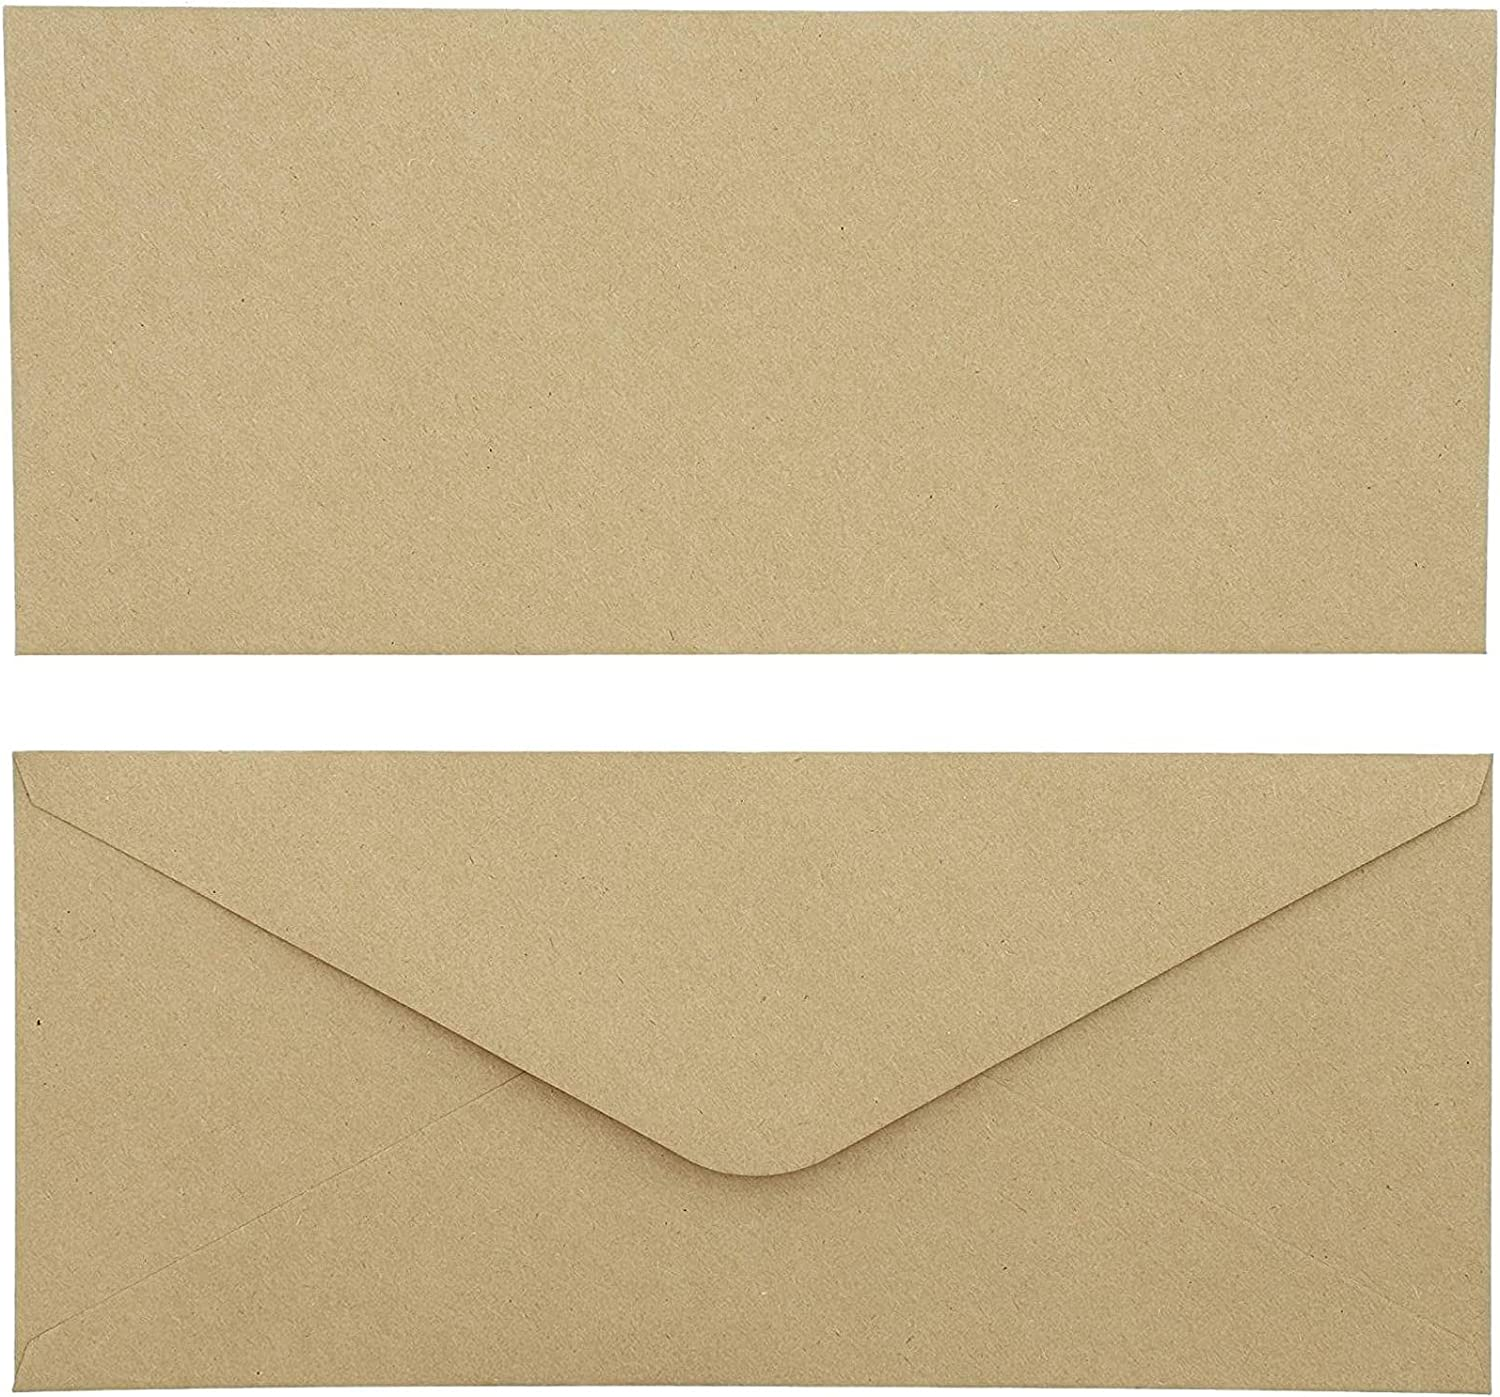 Kraft Paper #10 All stores are sold Business Brown Envelopes 9.5. x 4 Pack In Max 53% OFF 100